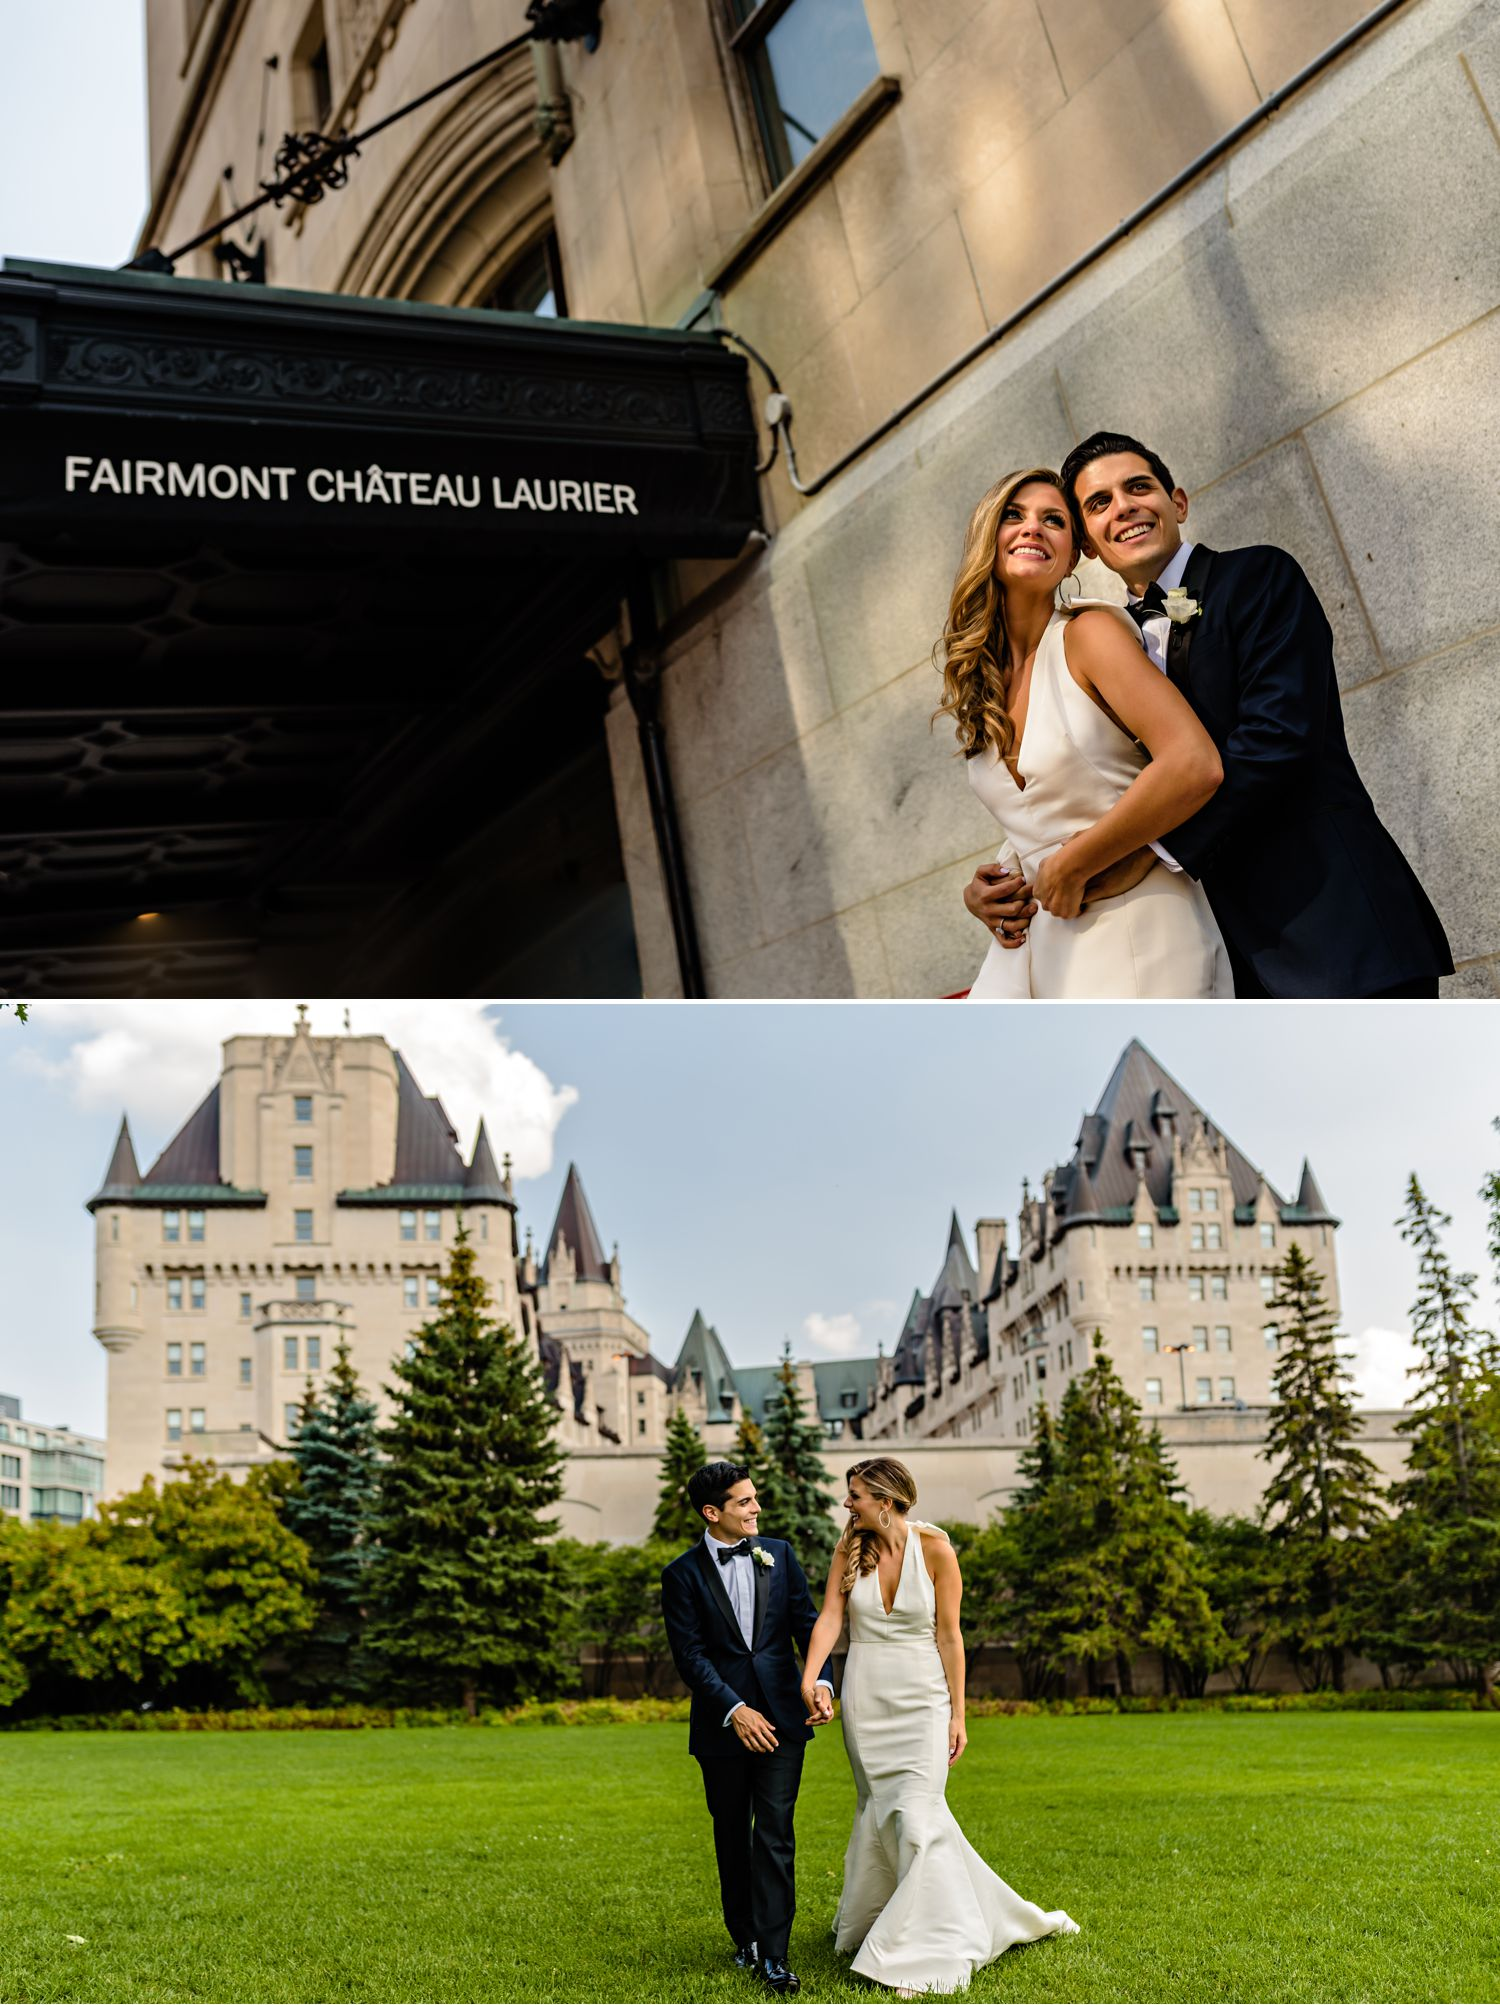 bride and groom portraits outside the fairmont chateau laurier in ottawa on